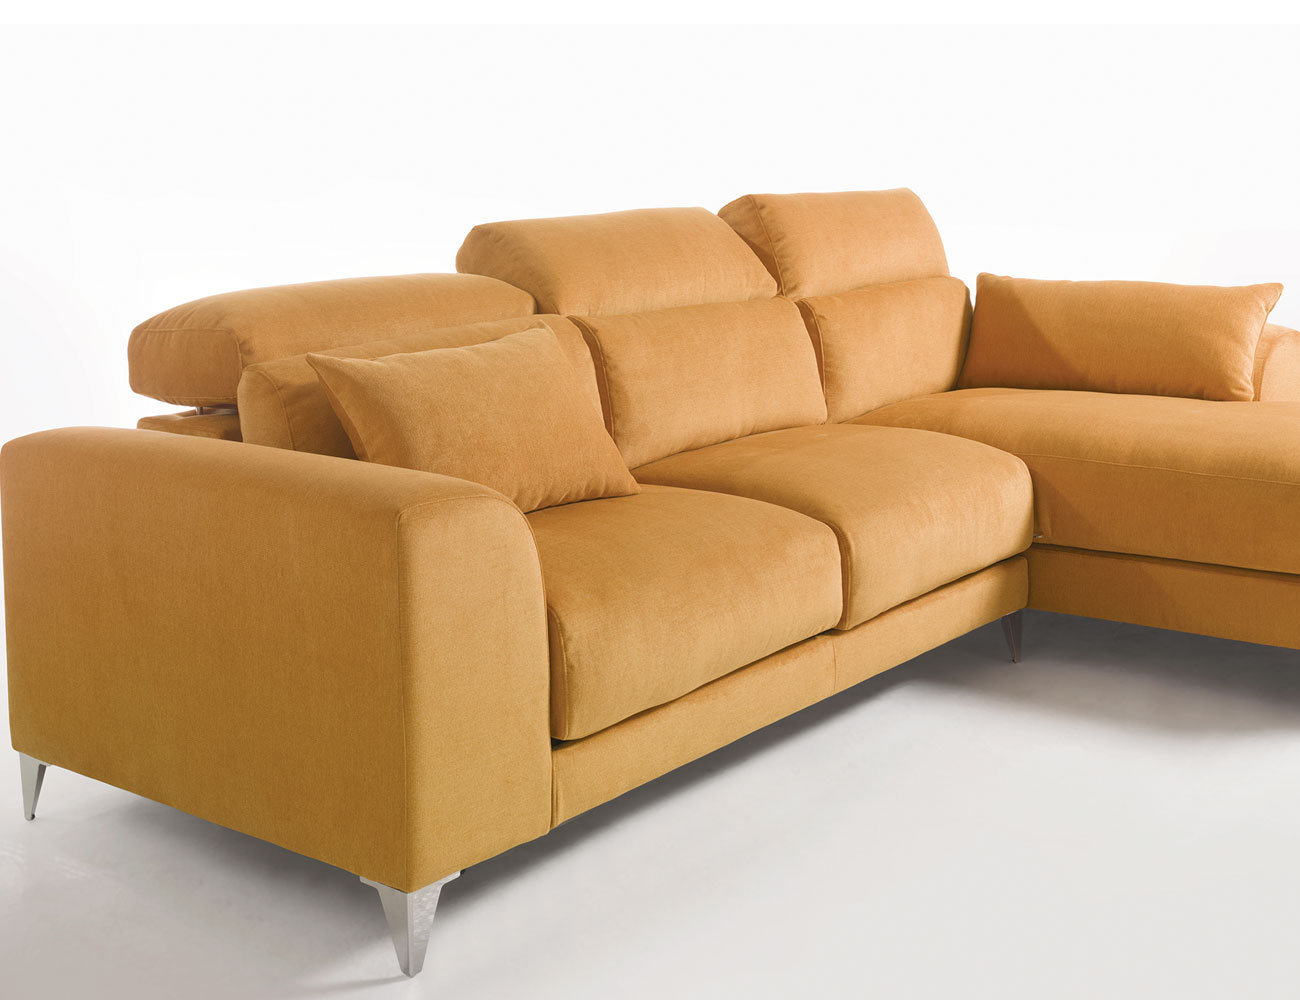 Sofa chaiselongue gran lujo decorativo patas altas amarillo 213